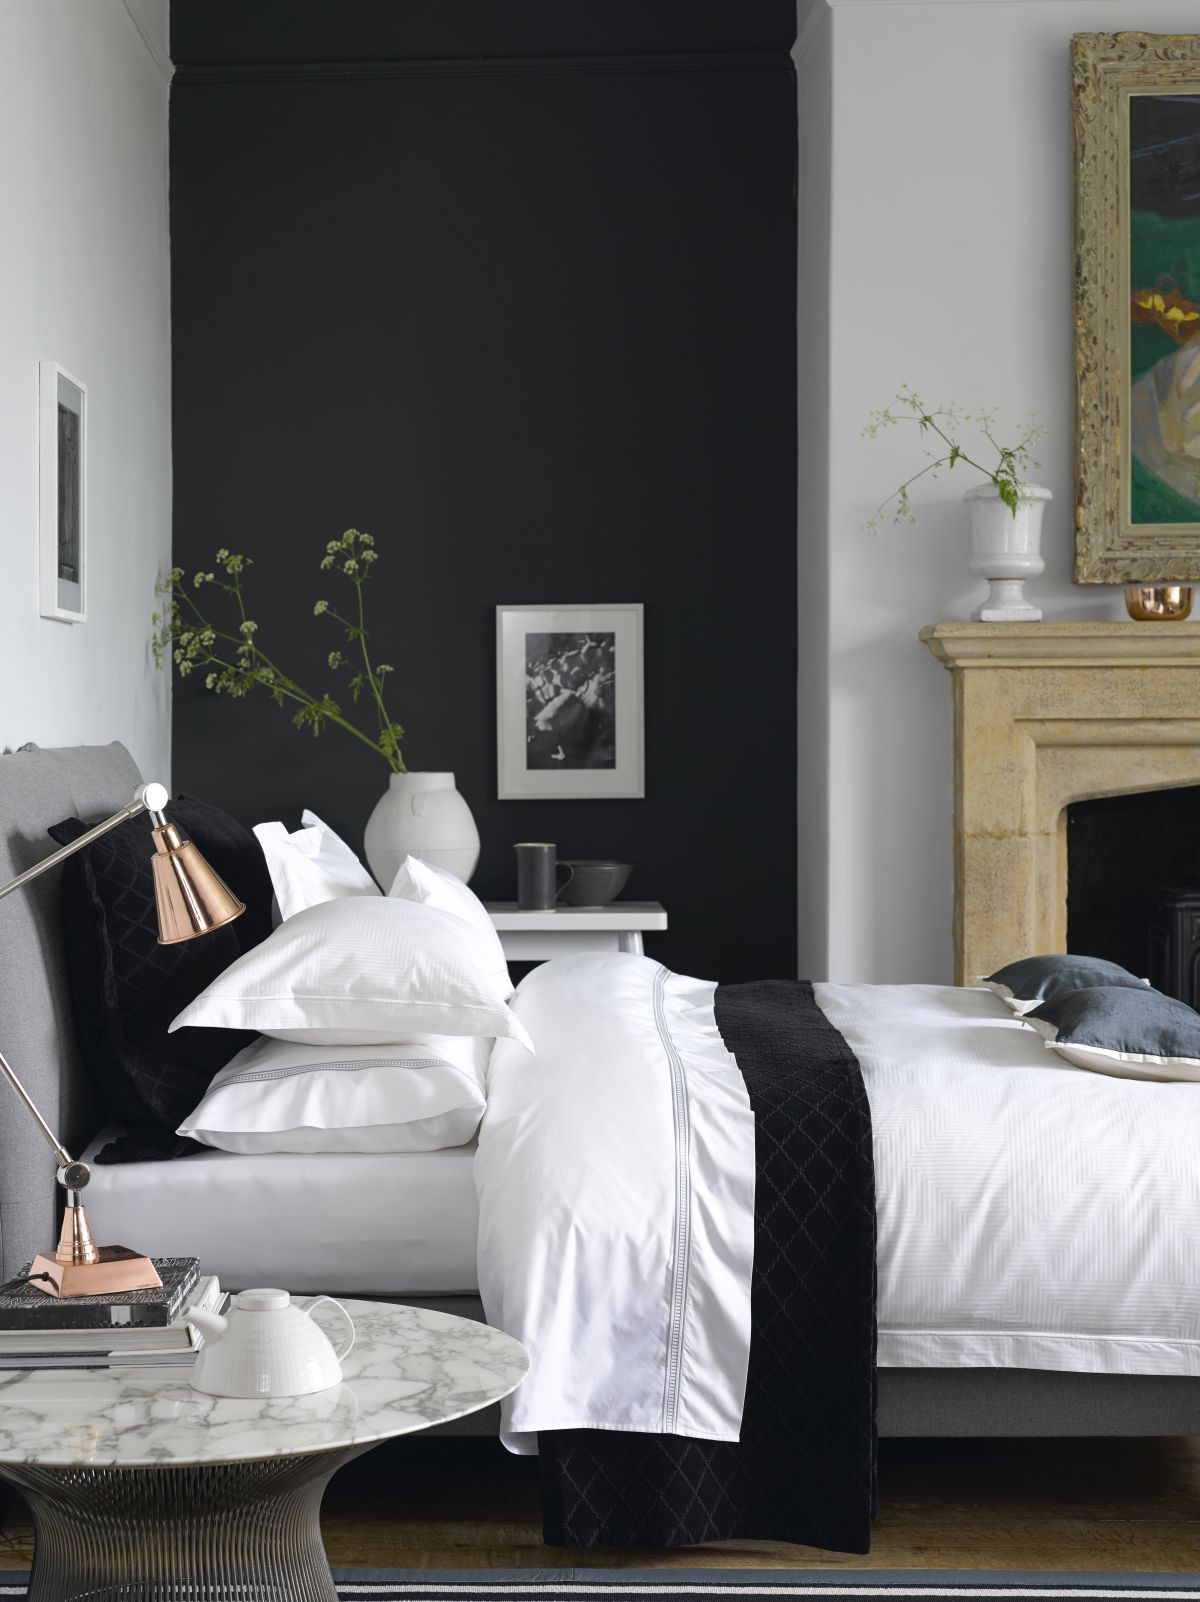 46 Inspiring Bedroom Ideas And Beautiful Decorating Tips Real Homes